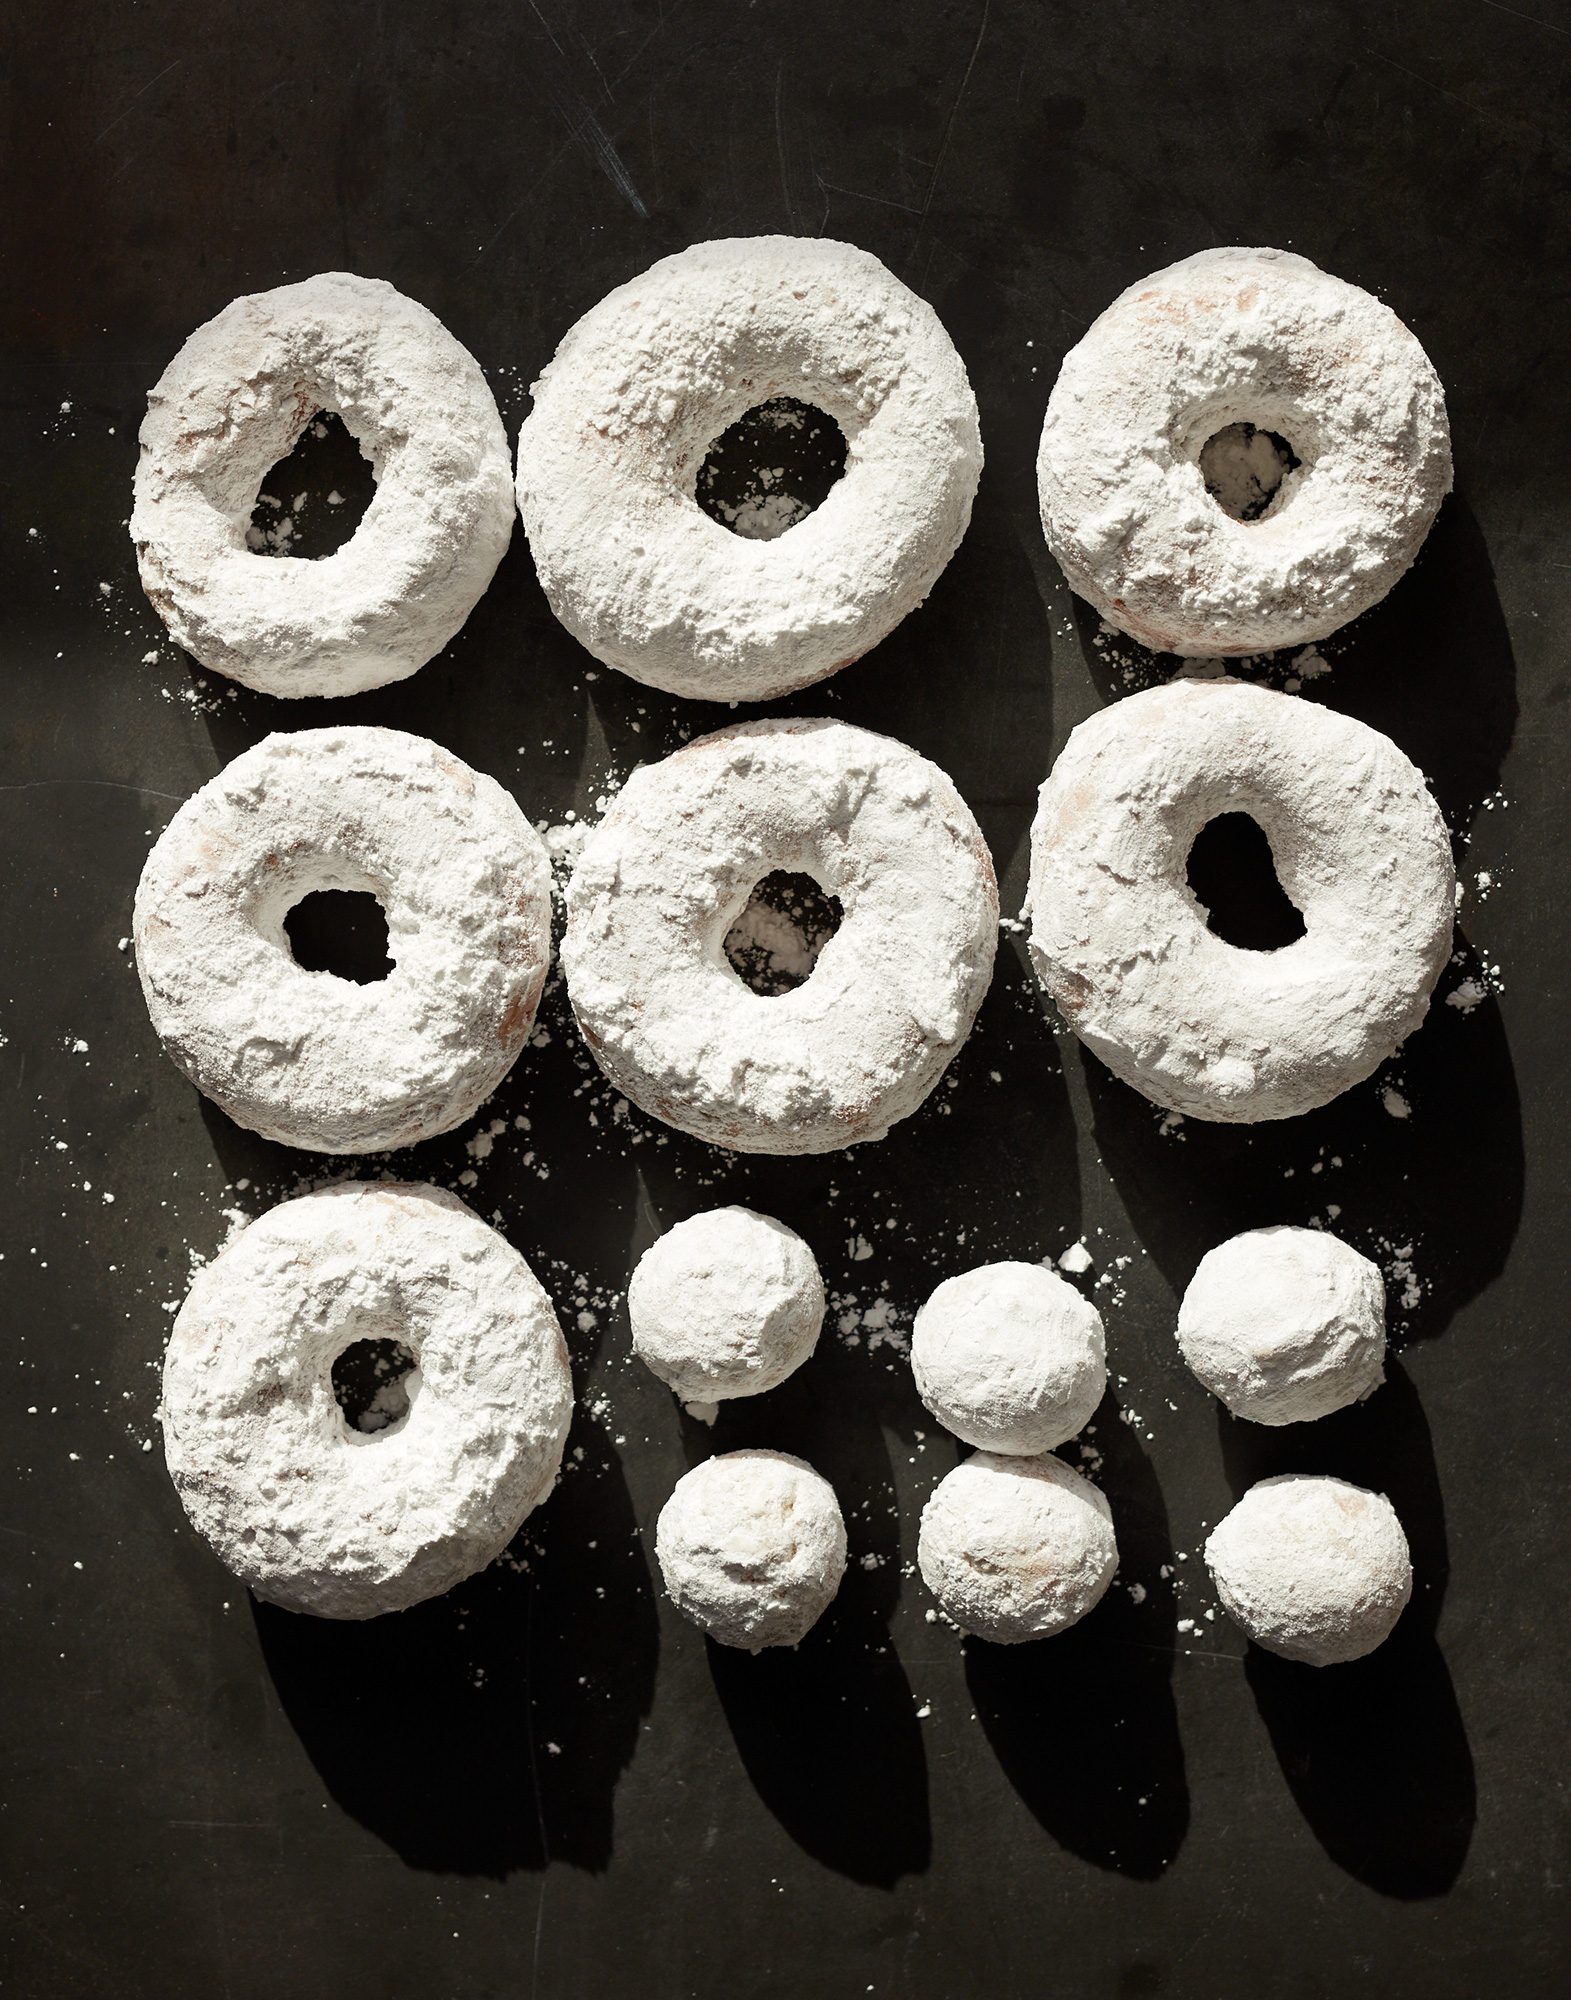 49_Old_Fashioned_Cake_Doughnuts_J_Miller_1068